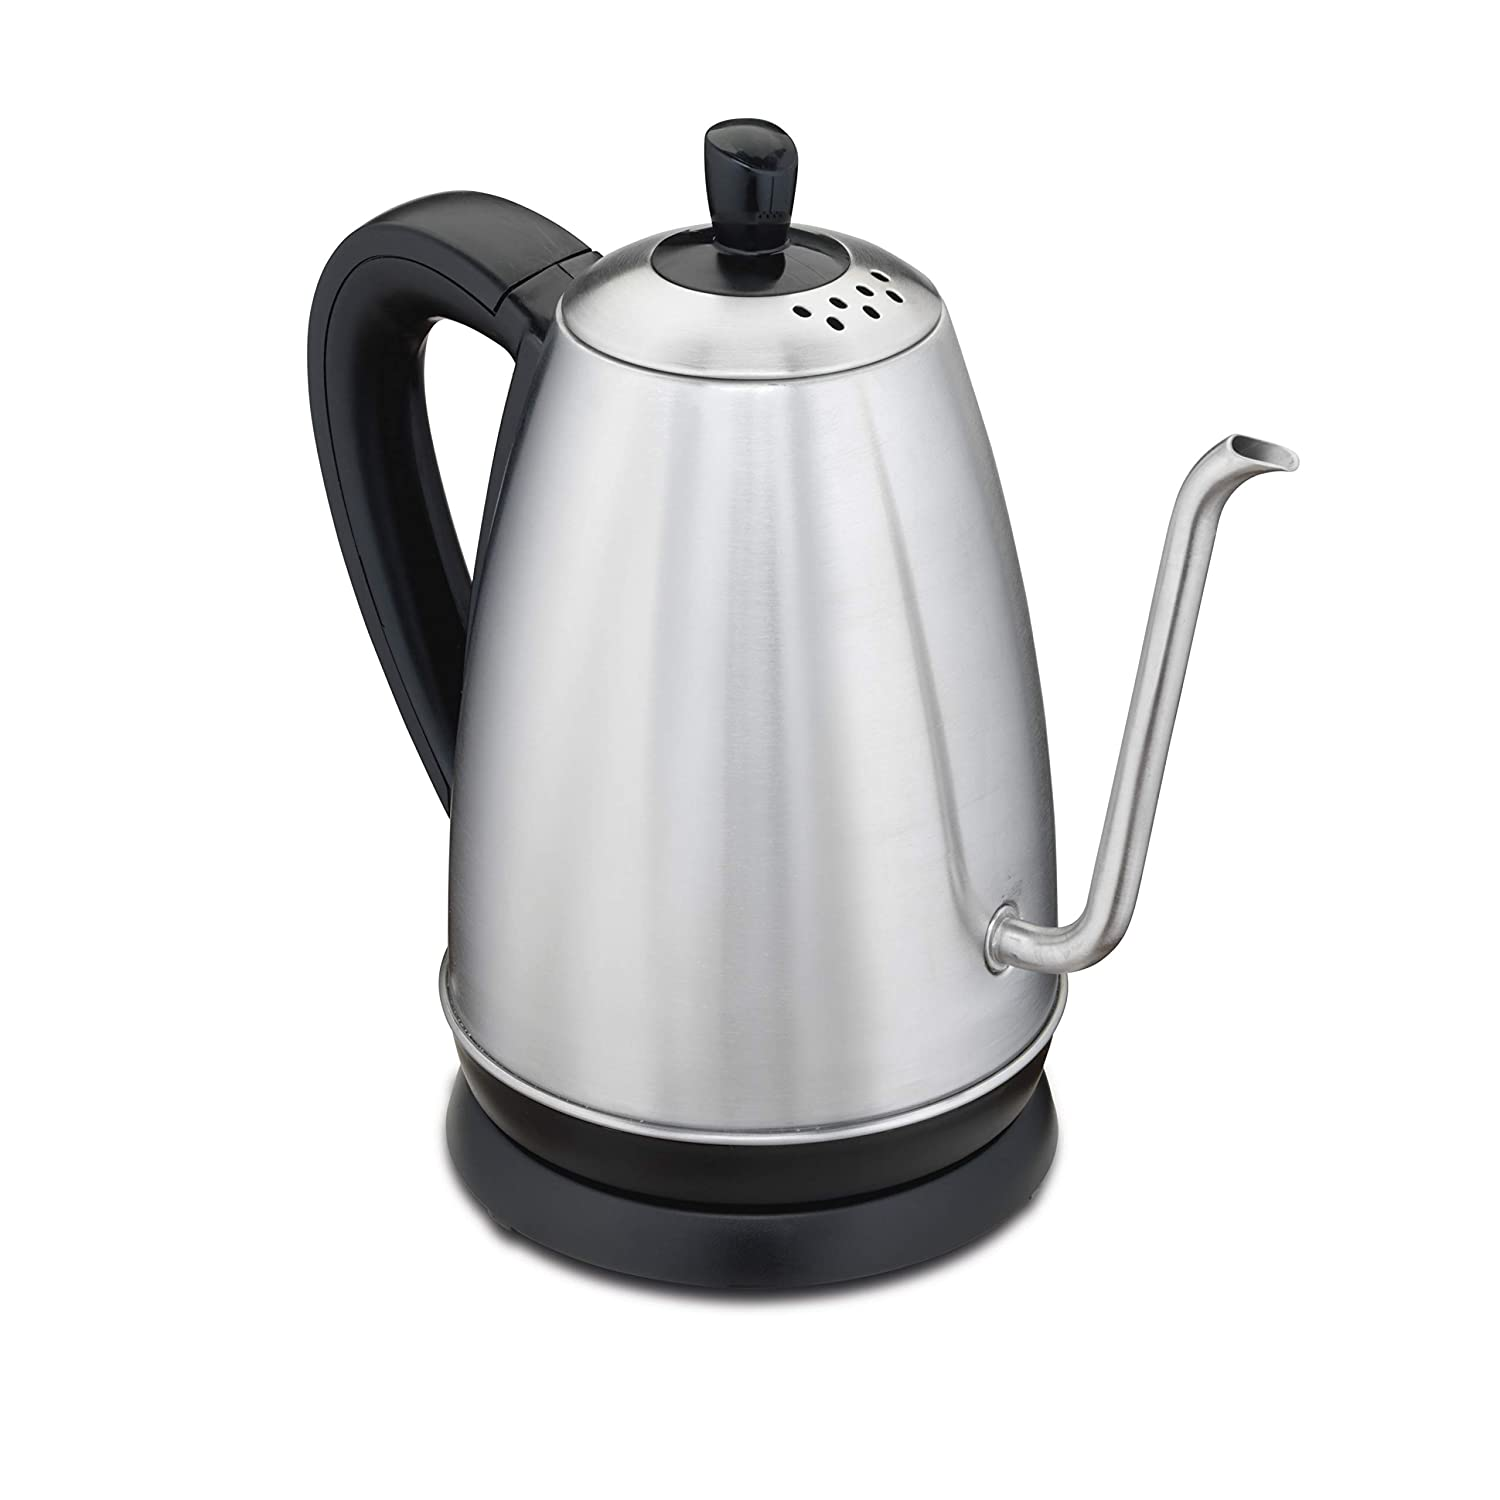 Hamilton Beach 1.2 Liter Gooseneck Pour Over Electric Kettle for Tea and Hot Water, Cordless, Auto-Shutoff and Boil-Dry Protection, Stainless Steel 40899